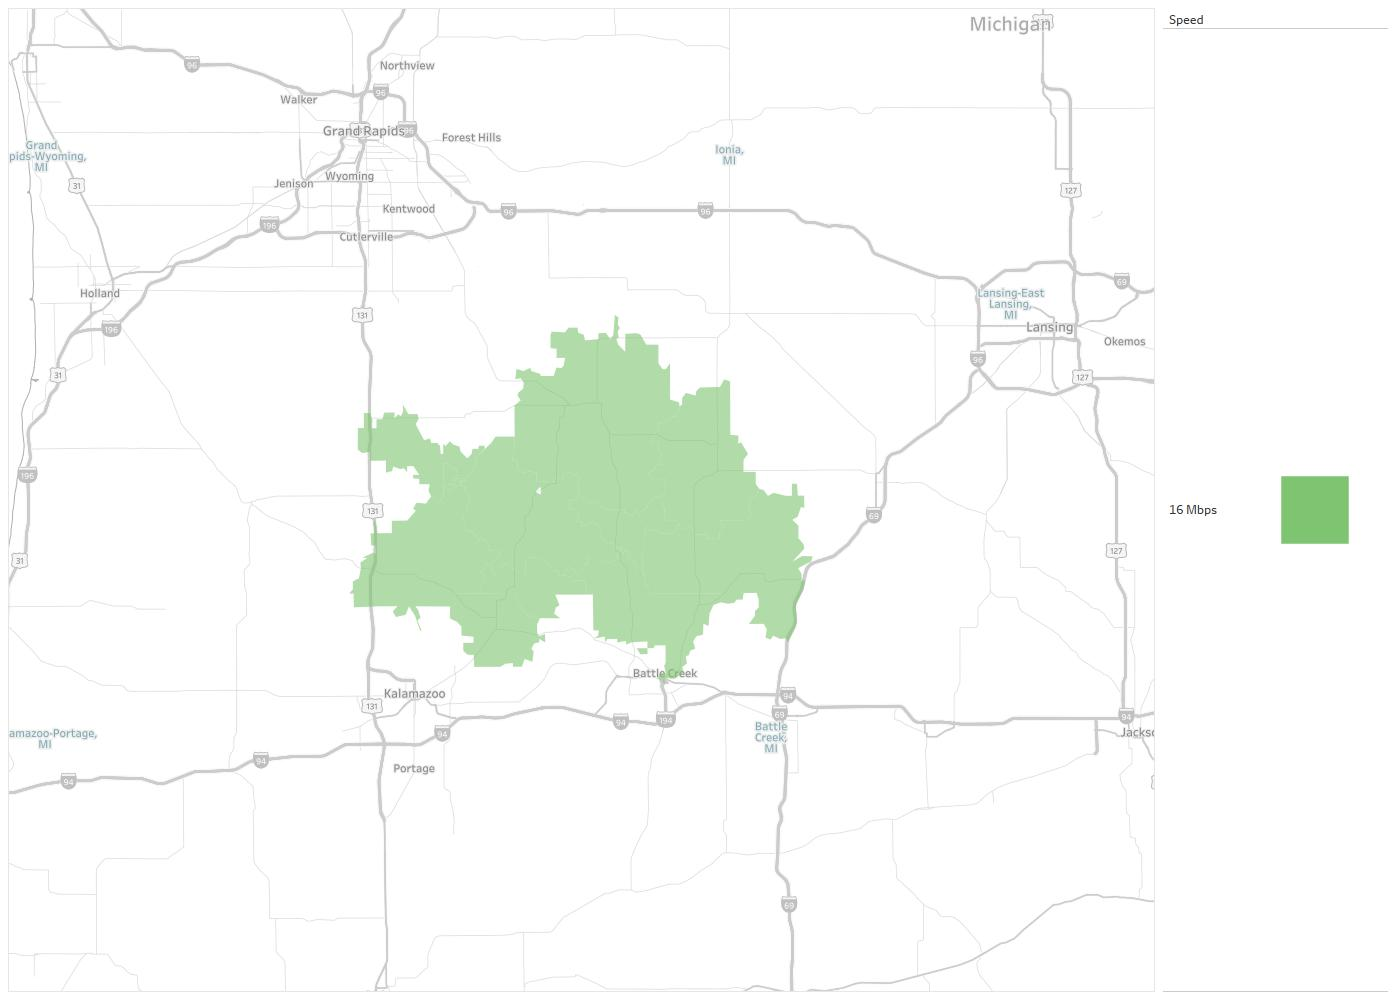 Battle Creek Mi Zip Code Map.Barry County Telephone Company Availability Areas Coverage Map